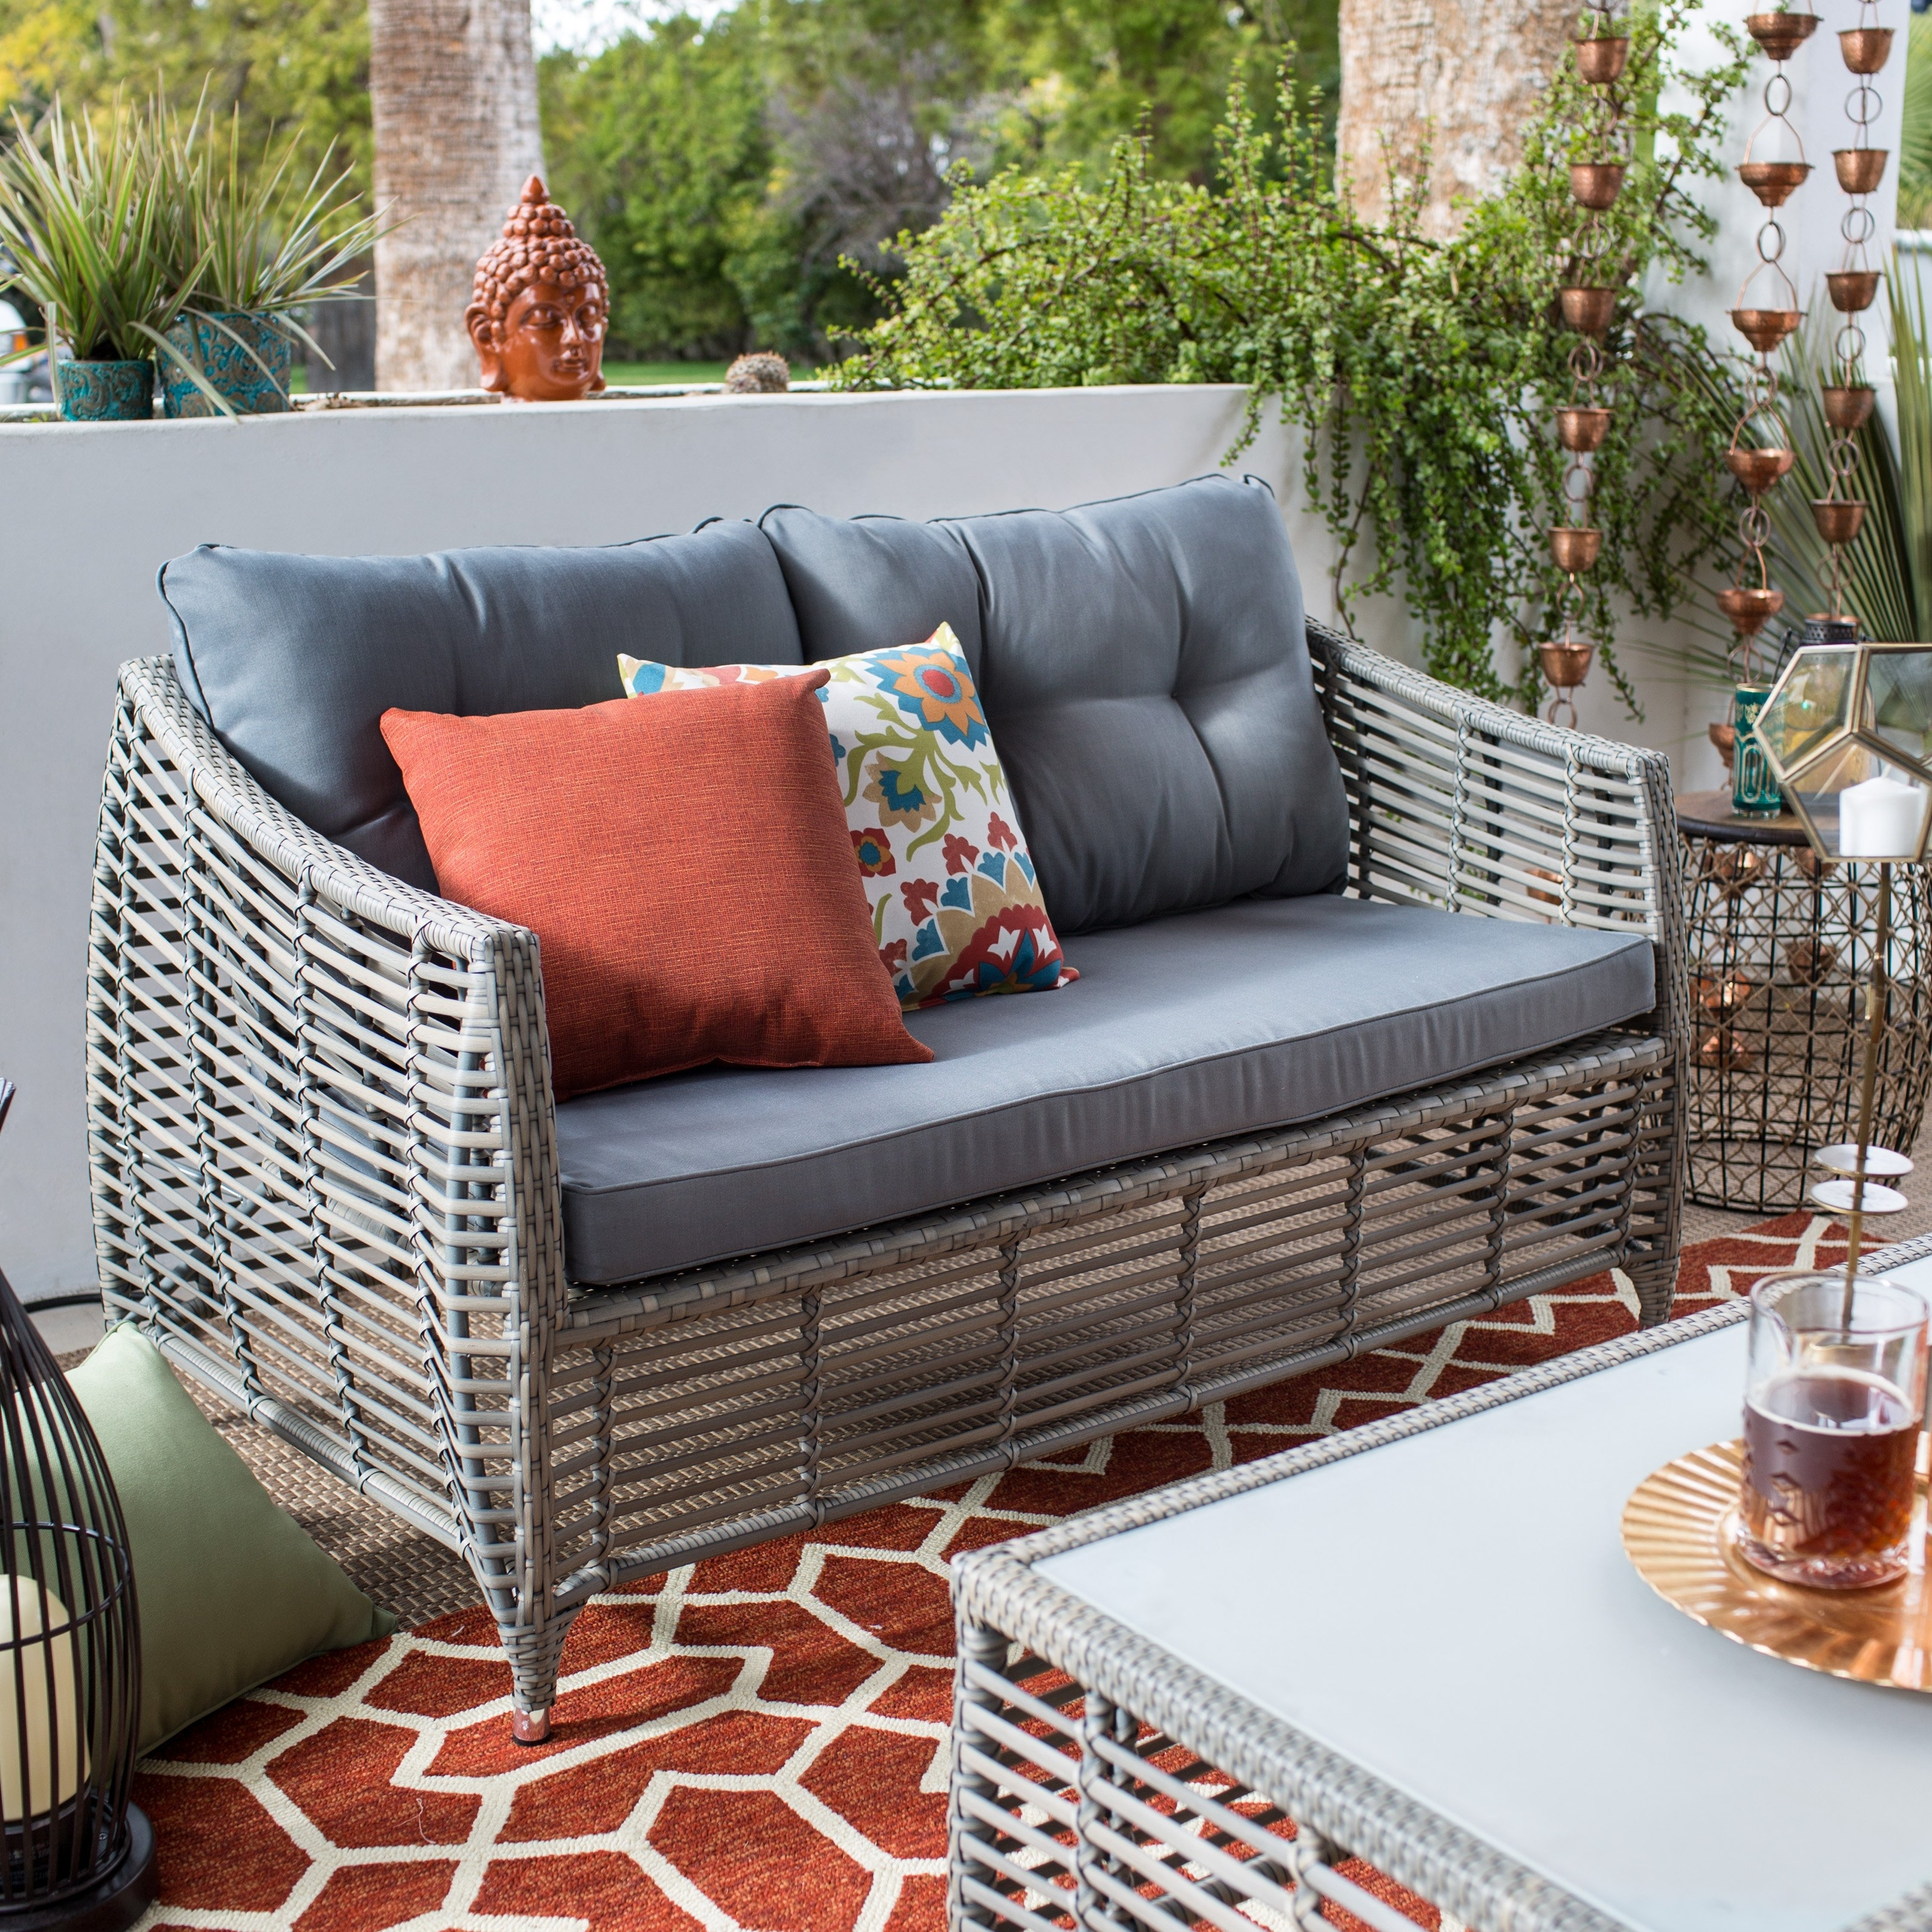 Patio Conversation Sets With Storage In Popular Outdoor Wicker Settee Cushions – Outdoor Designs (View 13 of 20)